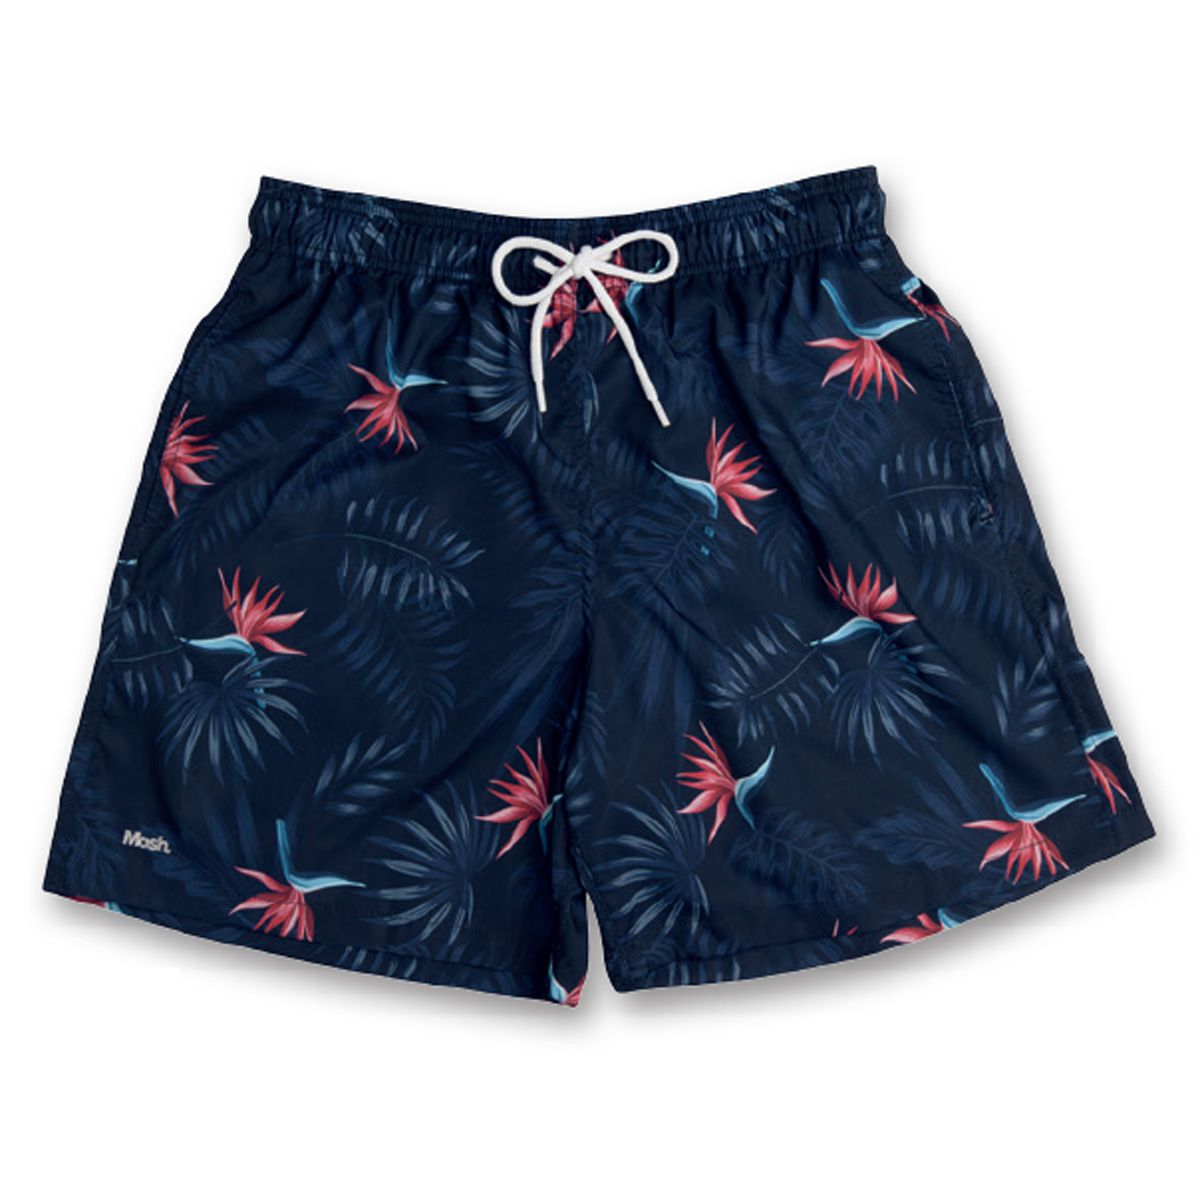 Shorts Beachwear Estampado Mash - 613.26